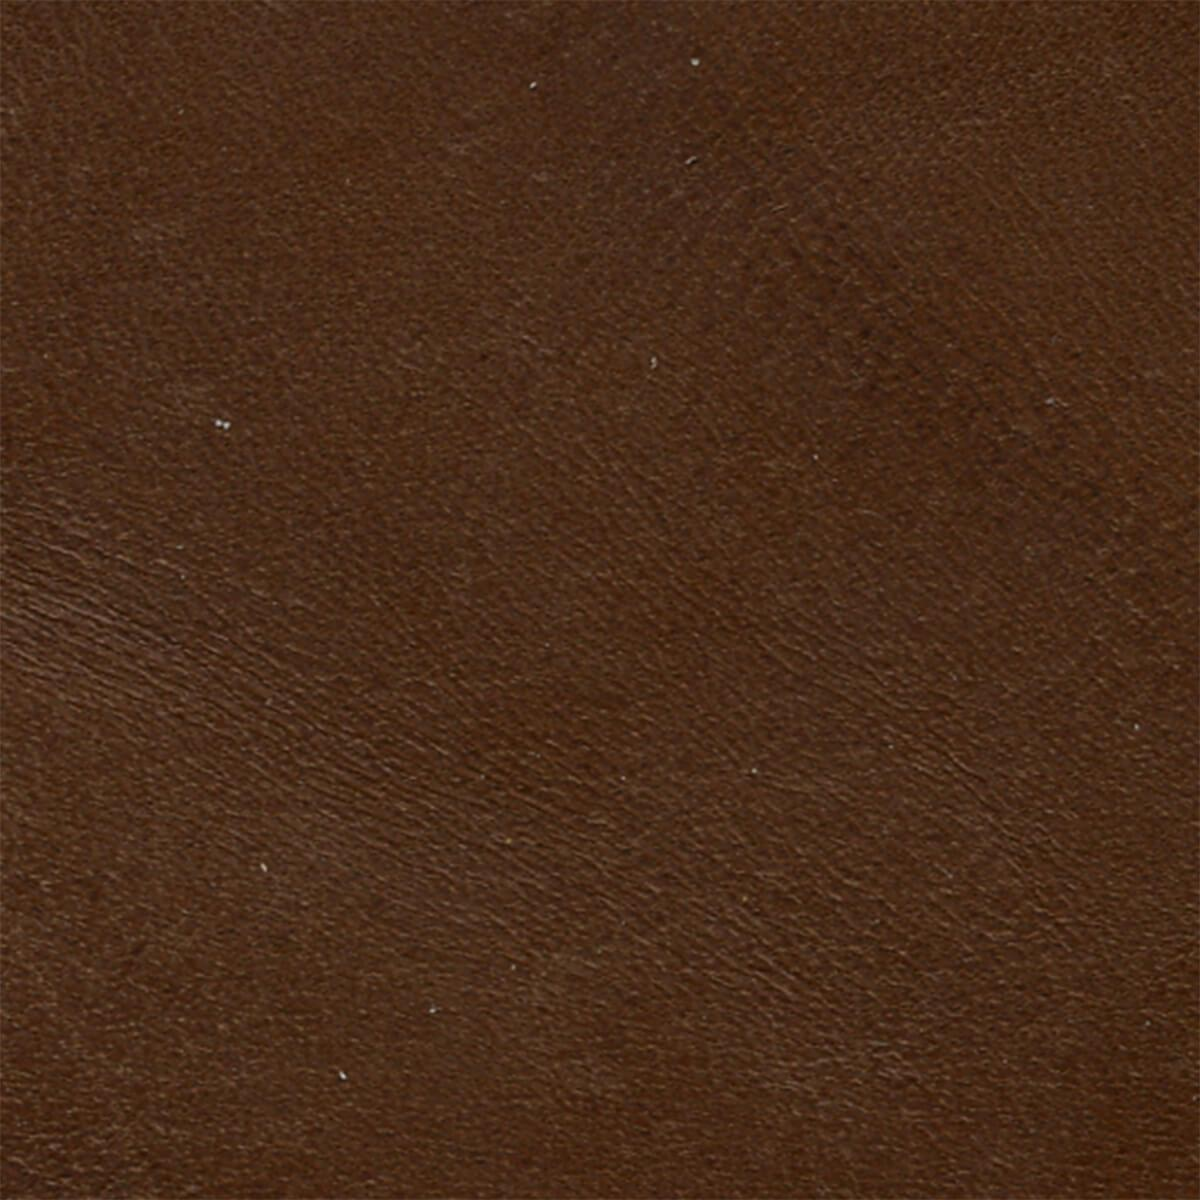 423 Earth Brown